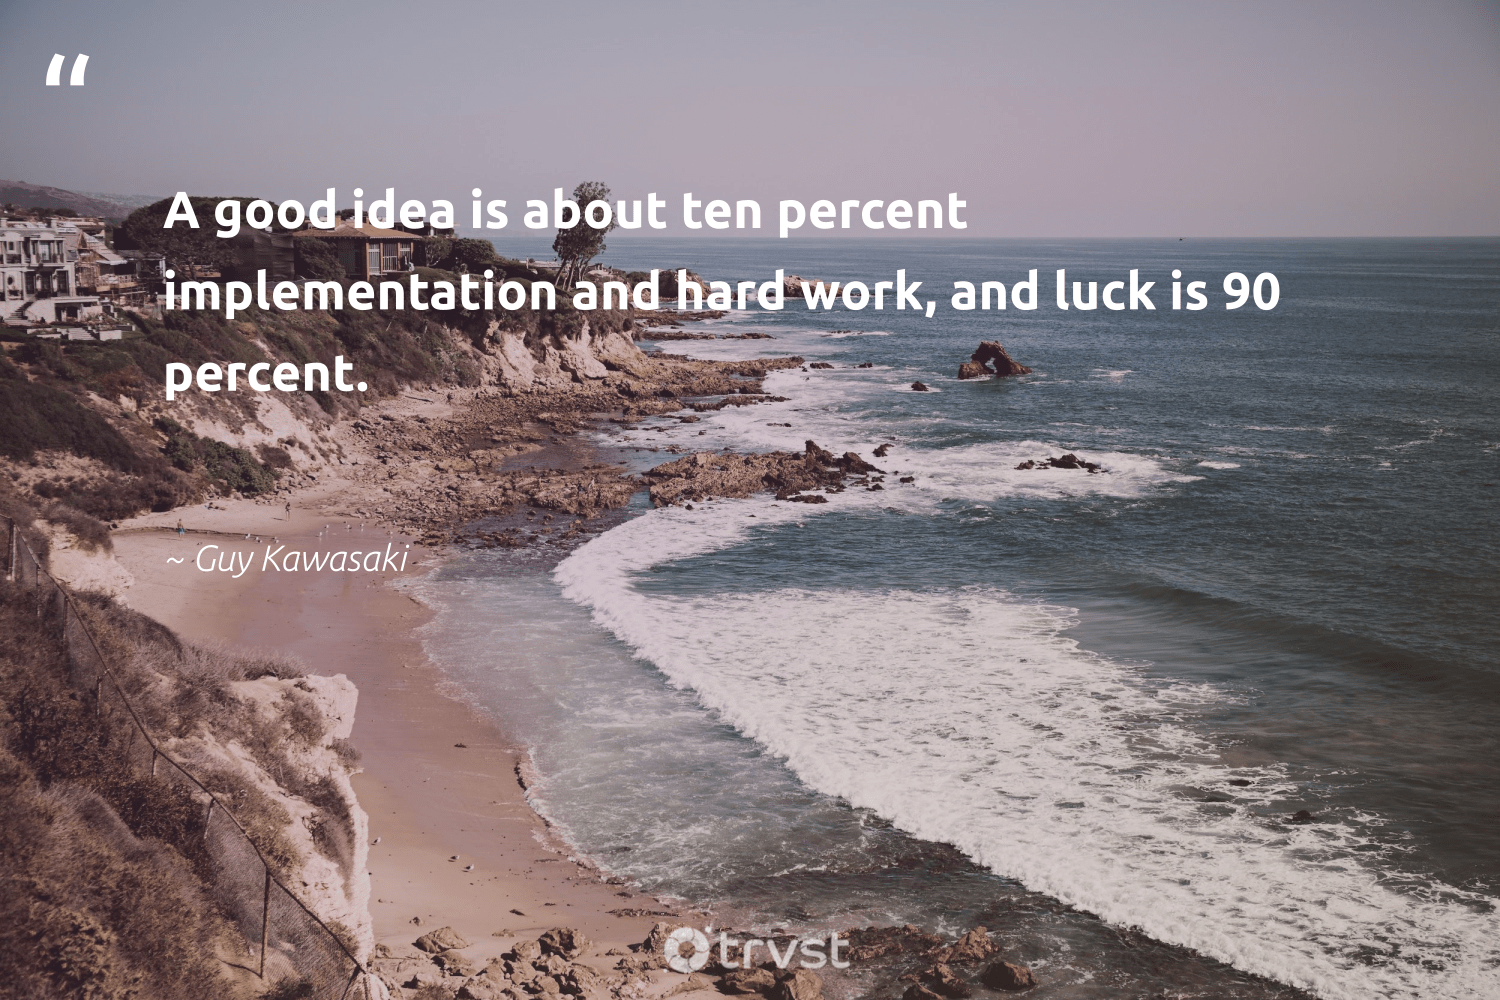 """A good idea is about ten percent implementation and hard work, and luck is 90 percent.""  - Guy Kawasaki #trvst #quotes #begreat #planetearthfirst #futureofwork #ecoconscious #nevergiveup #bethechange #softskills #dotherightthing #thinkgreen #takeaction"